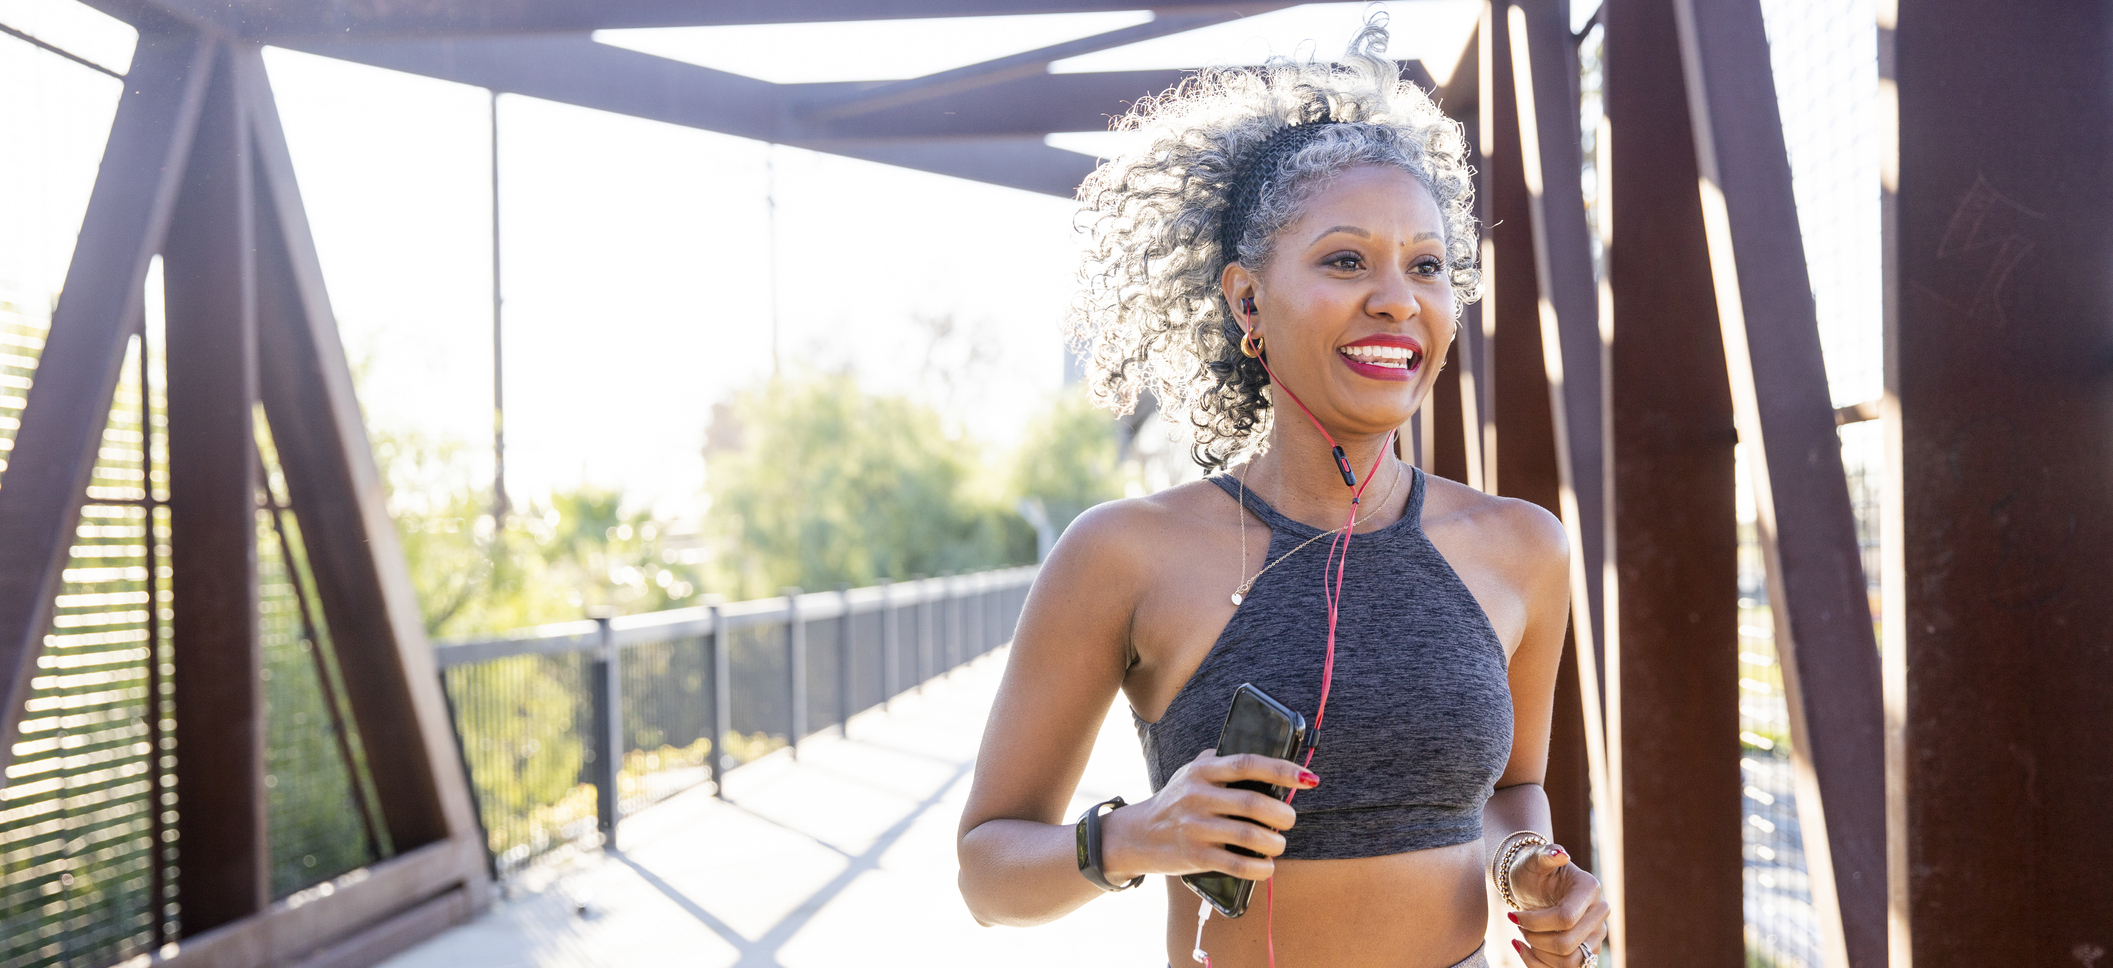 How to curate the best running playlist